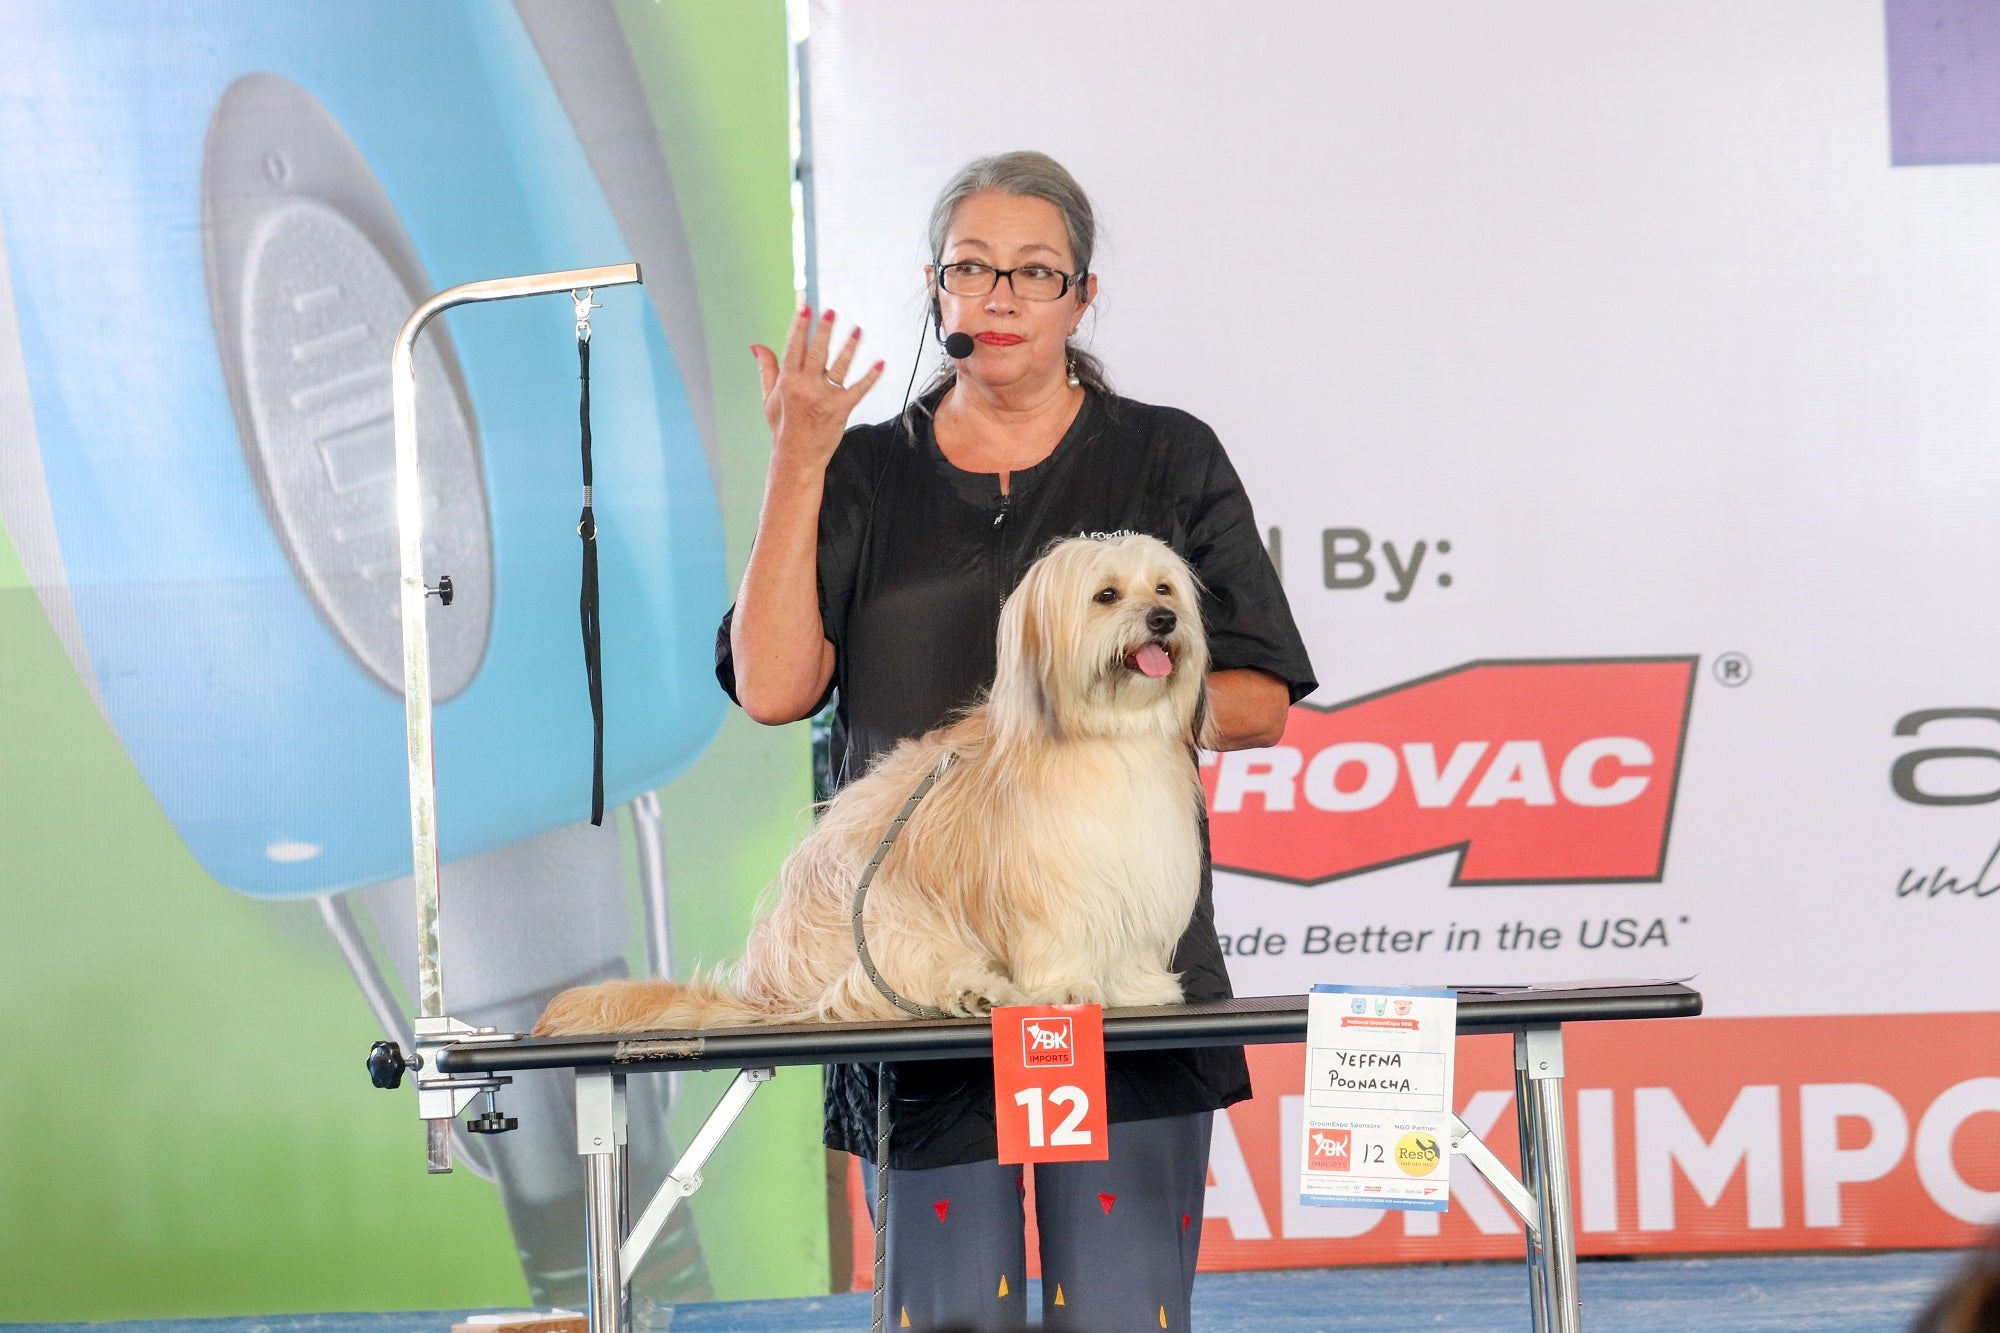 National Dog grooming seminar